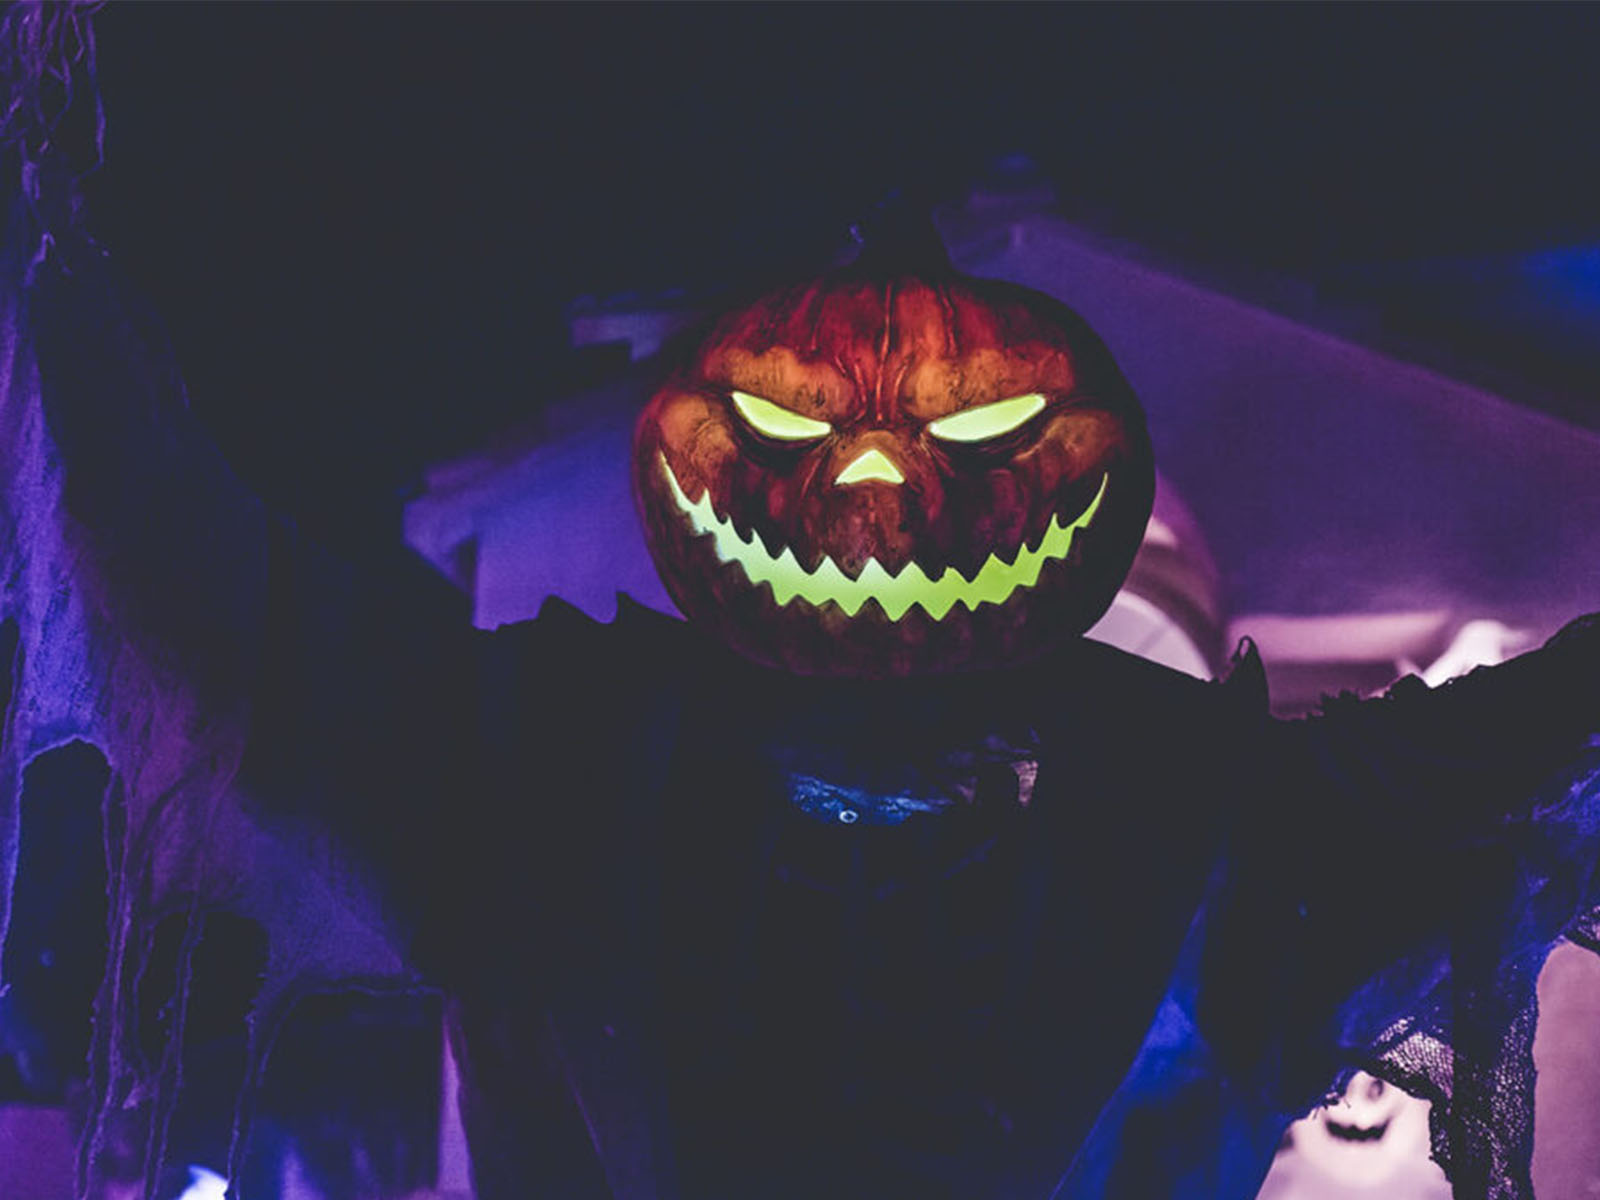 The Best Celebrity Halloween Costumes Photo by NeONBRAND on Unsplash